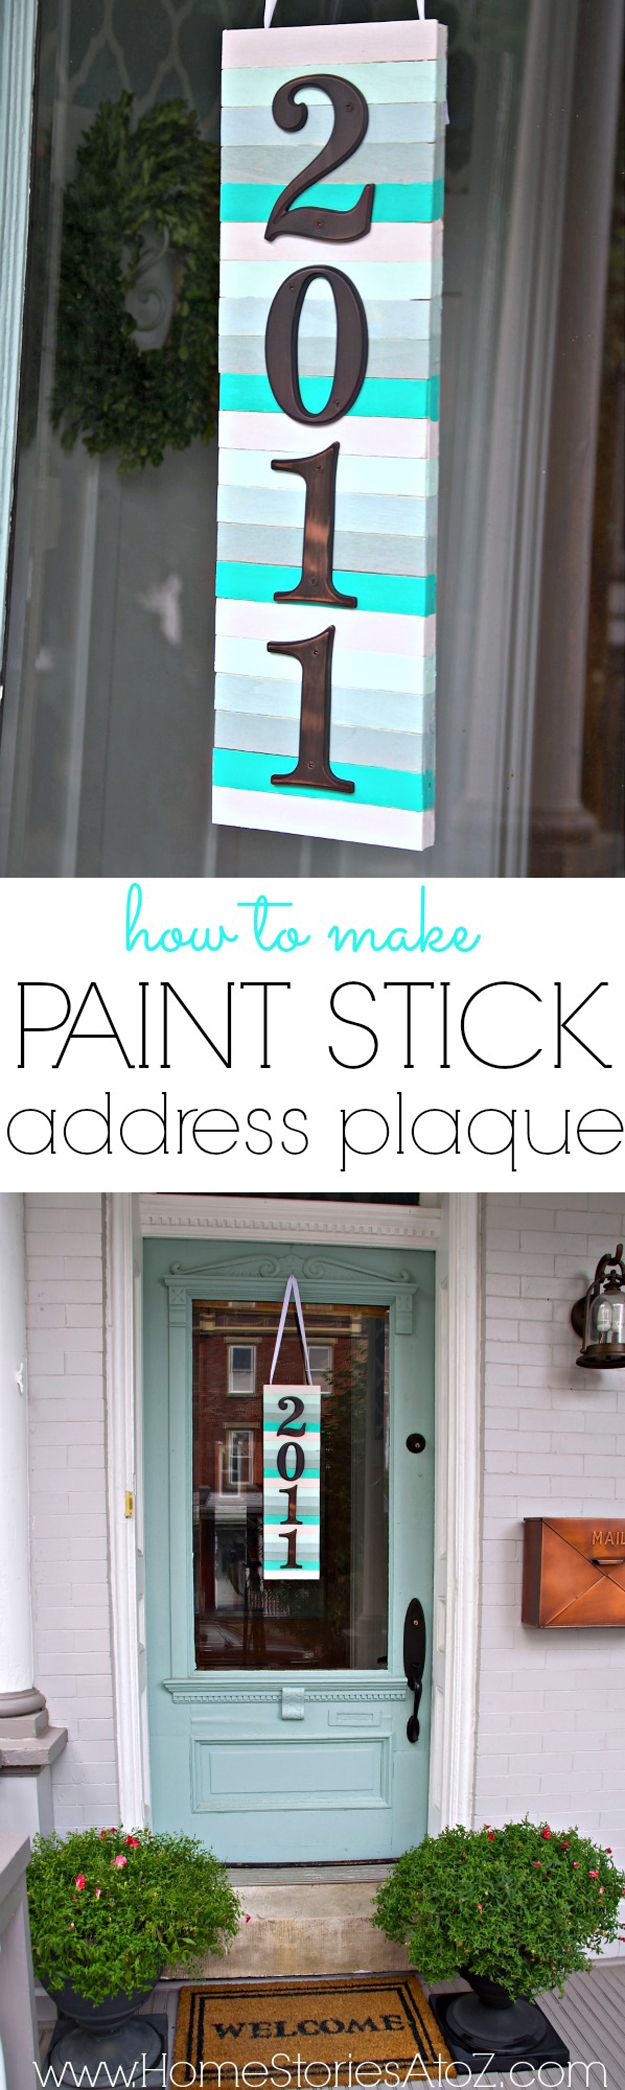 Pintar palillo Ideas Arte y Proyectos | http://artesaniasdebricolaje.ru/paint-stick-diy-projects/